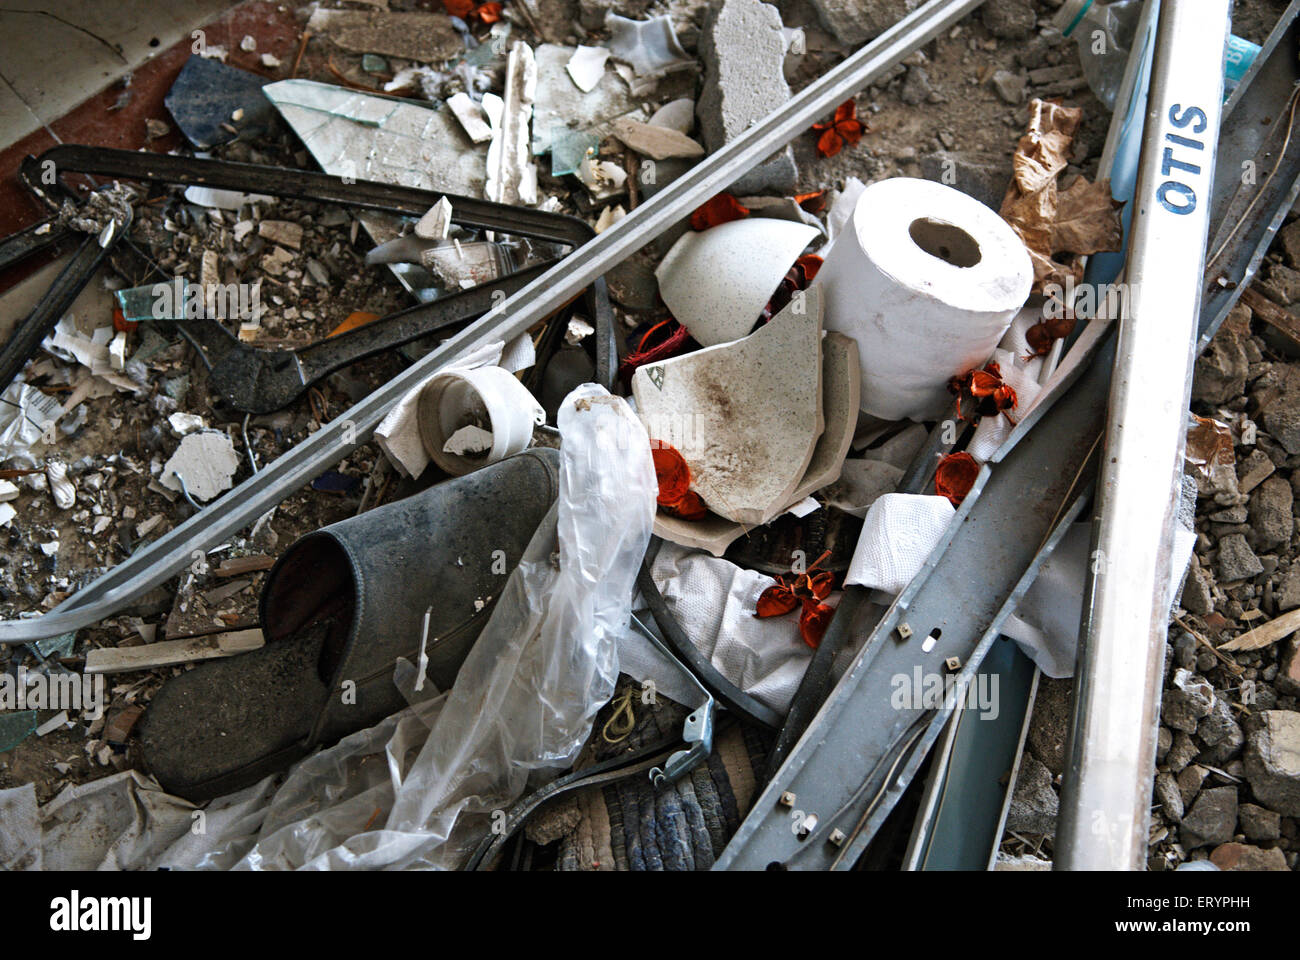 Debris at nariman house jewish community centre by deccan mujahedeen terrorists attack in Bombay - Stock Image